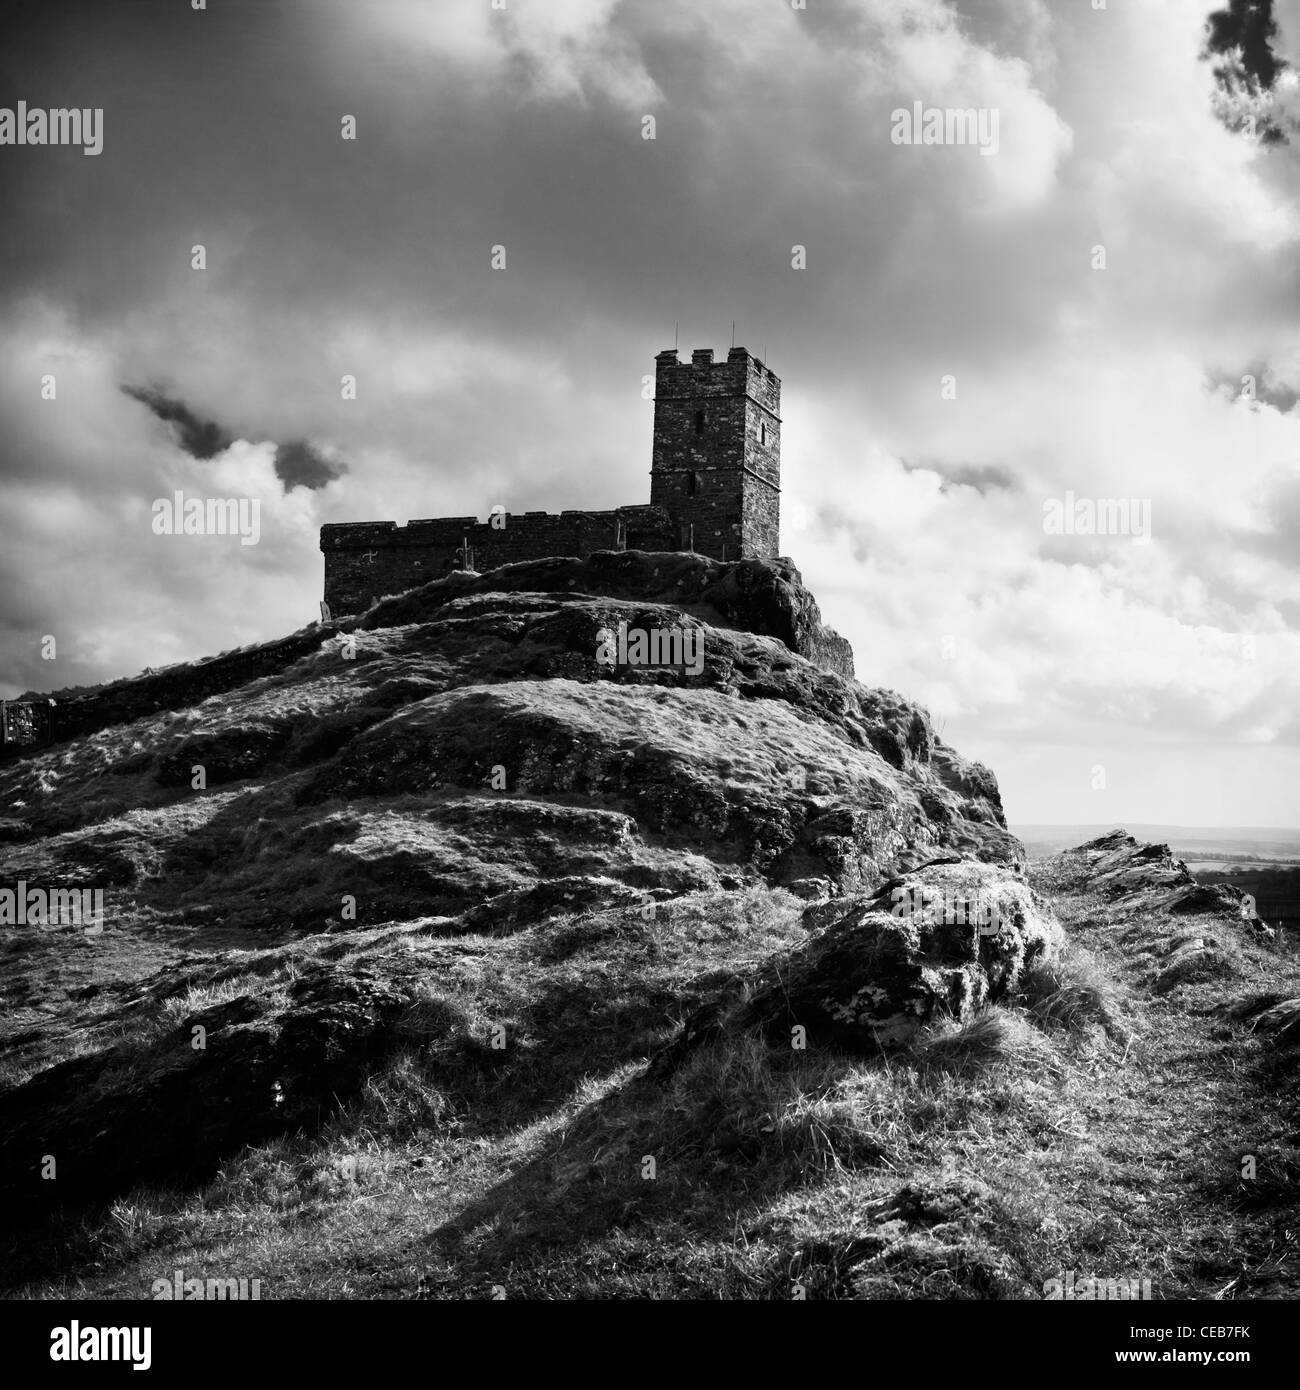 View of St Michael's Church at Brentor (Brent Tor) on the edge of Dartmoor near Mary Tavy and Tavistock. - Stock Image